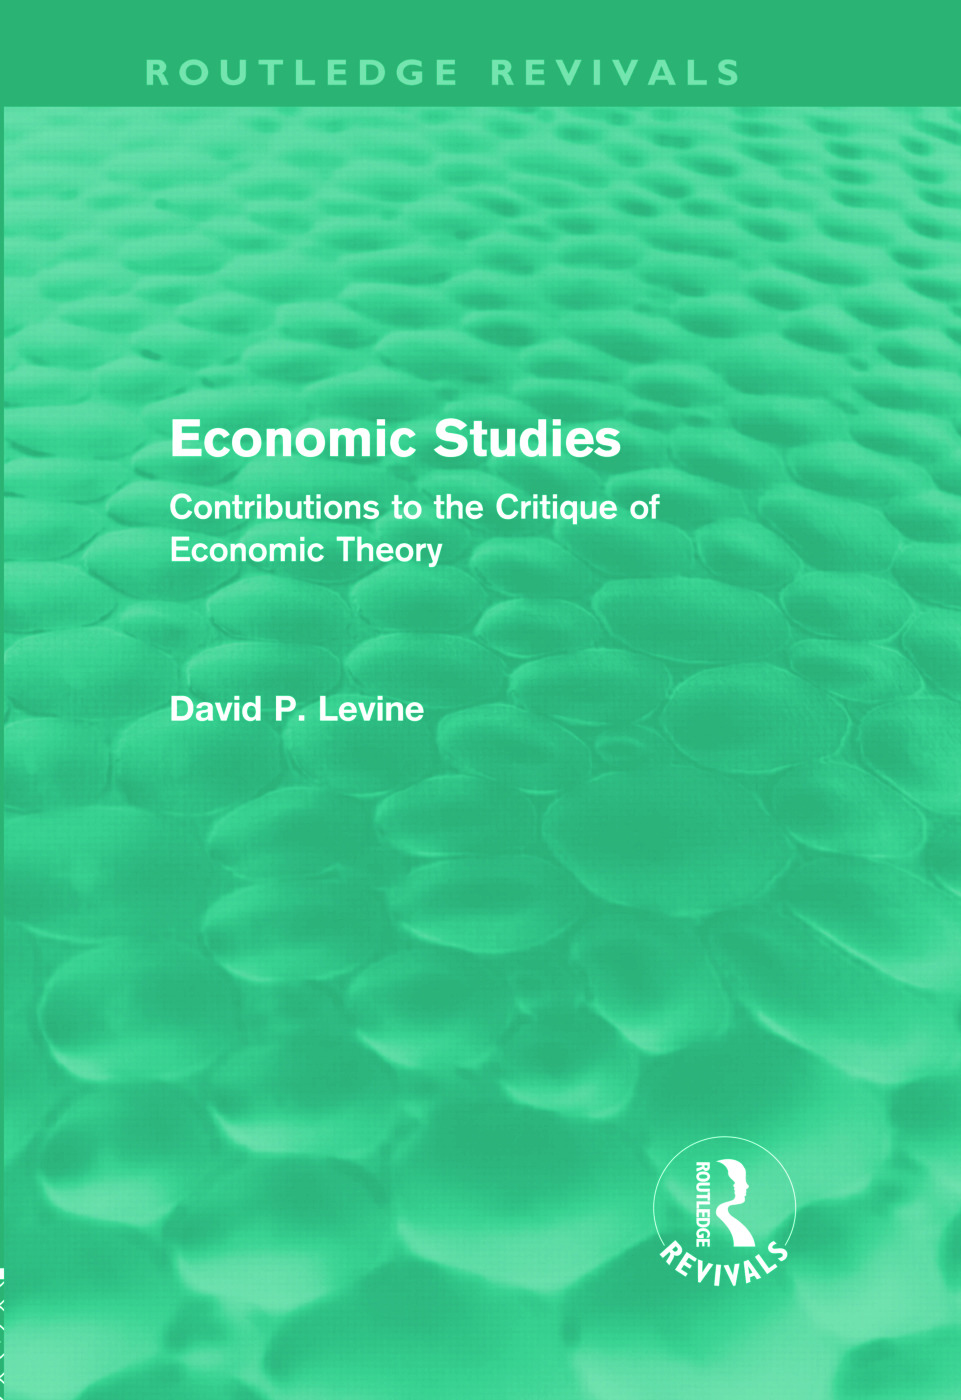 Economic Studies (Routledge Revivals): Contributions to the Critique of Economic Theory (Hardback) book cover